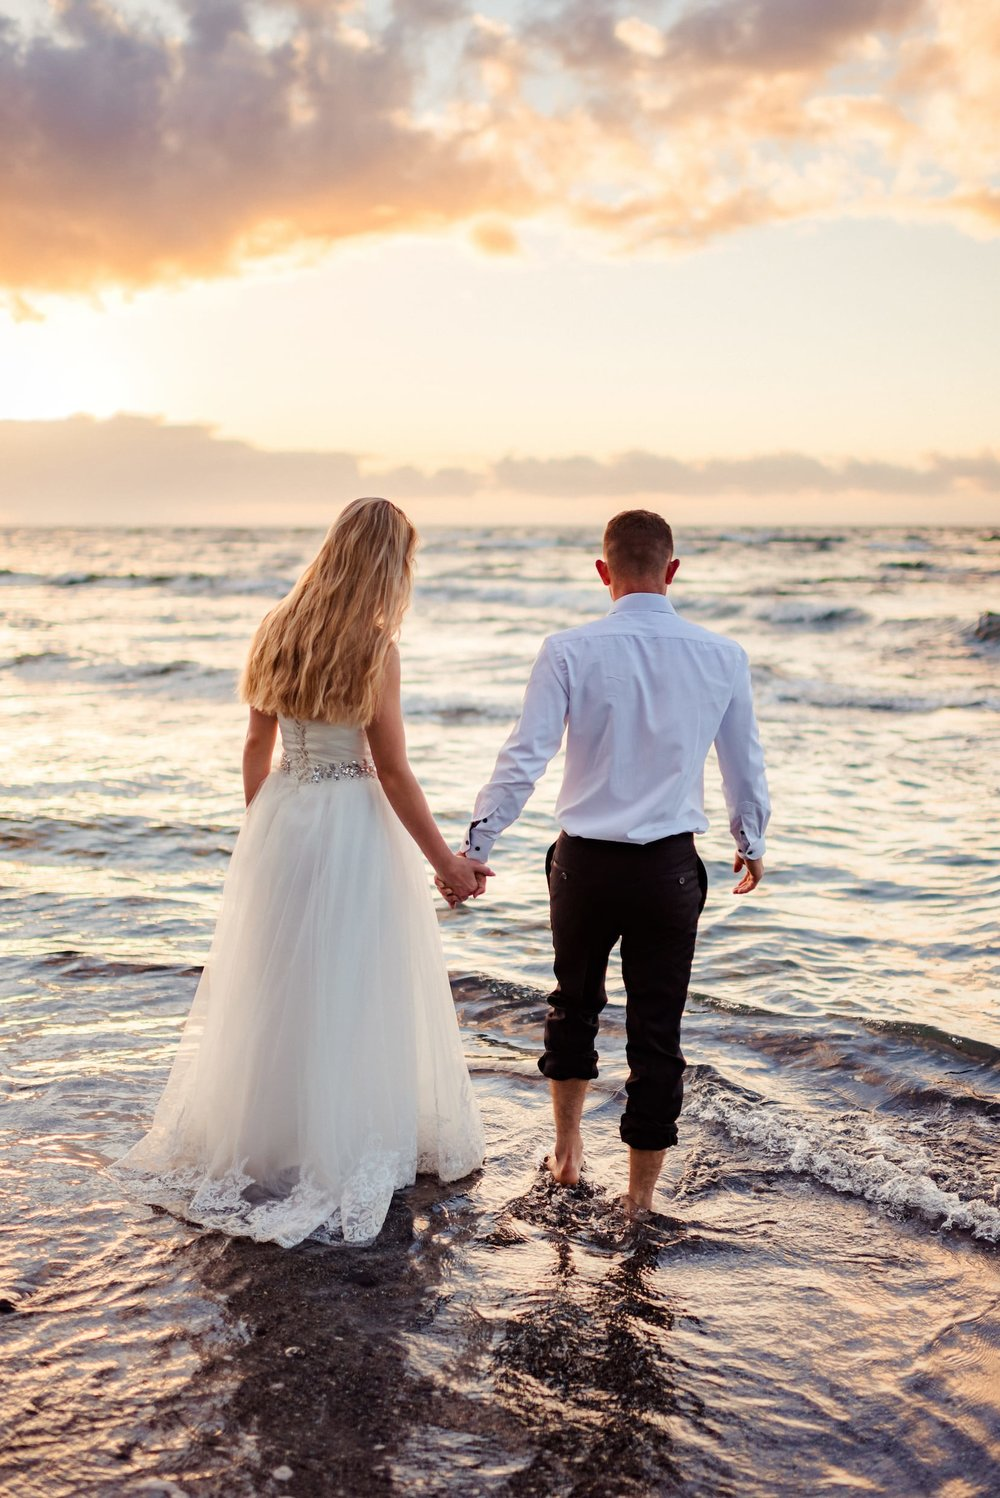 Big-Island-Elopement-Private-Wedding-Hawaii-Beach-12.jpg